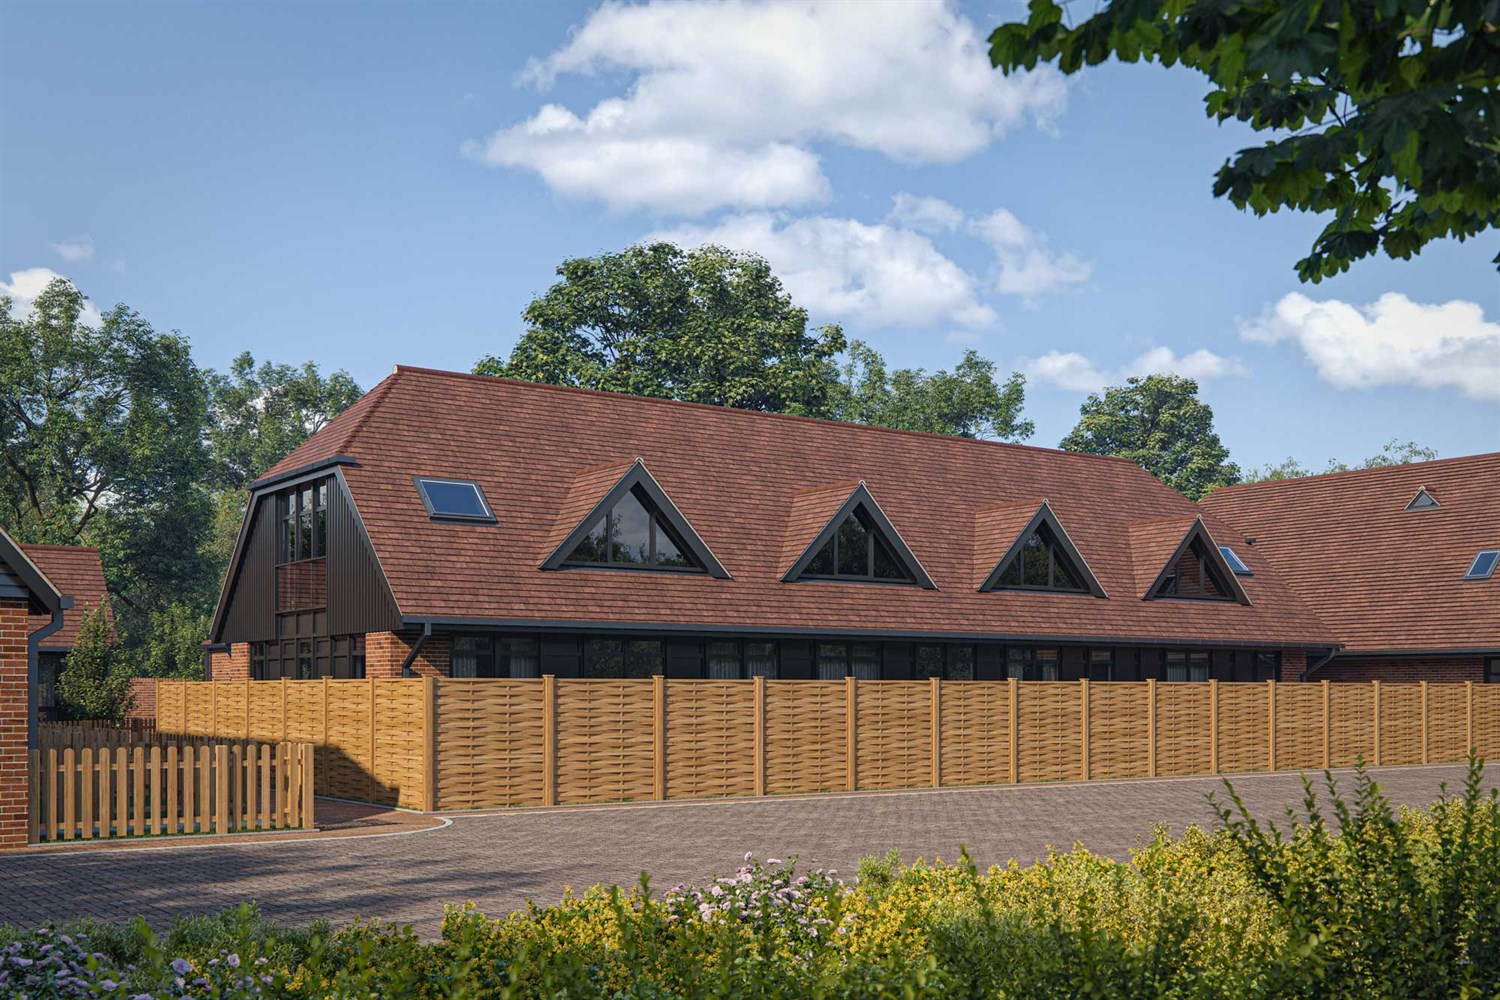 New Barn, Beansheaf Grange - 2 bed apartment, Calcot, Reading, RG31 7BW